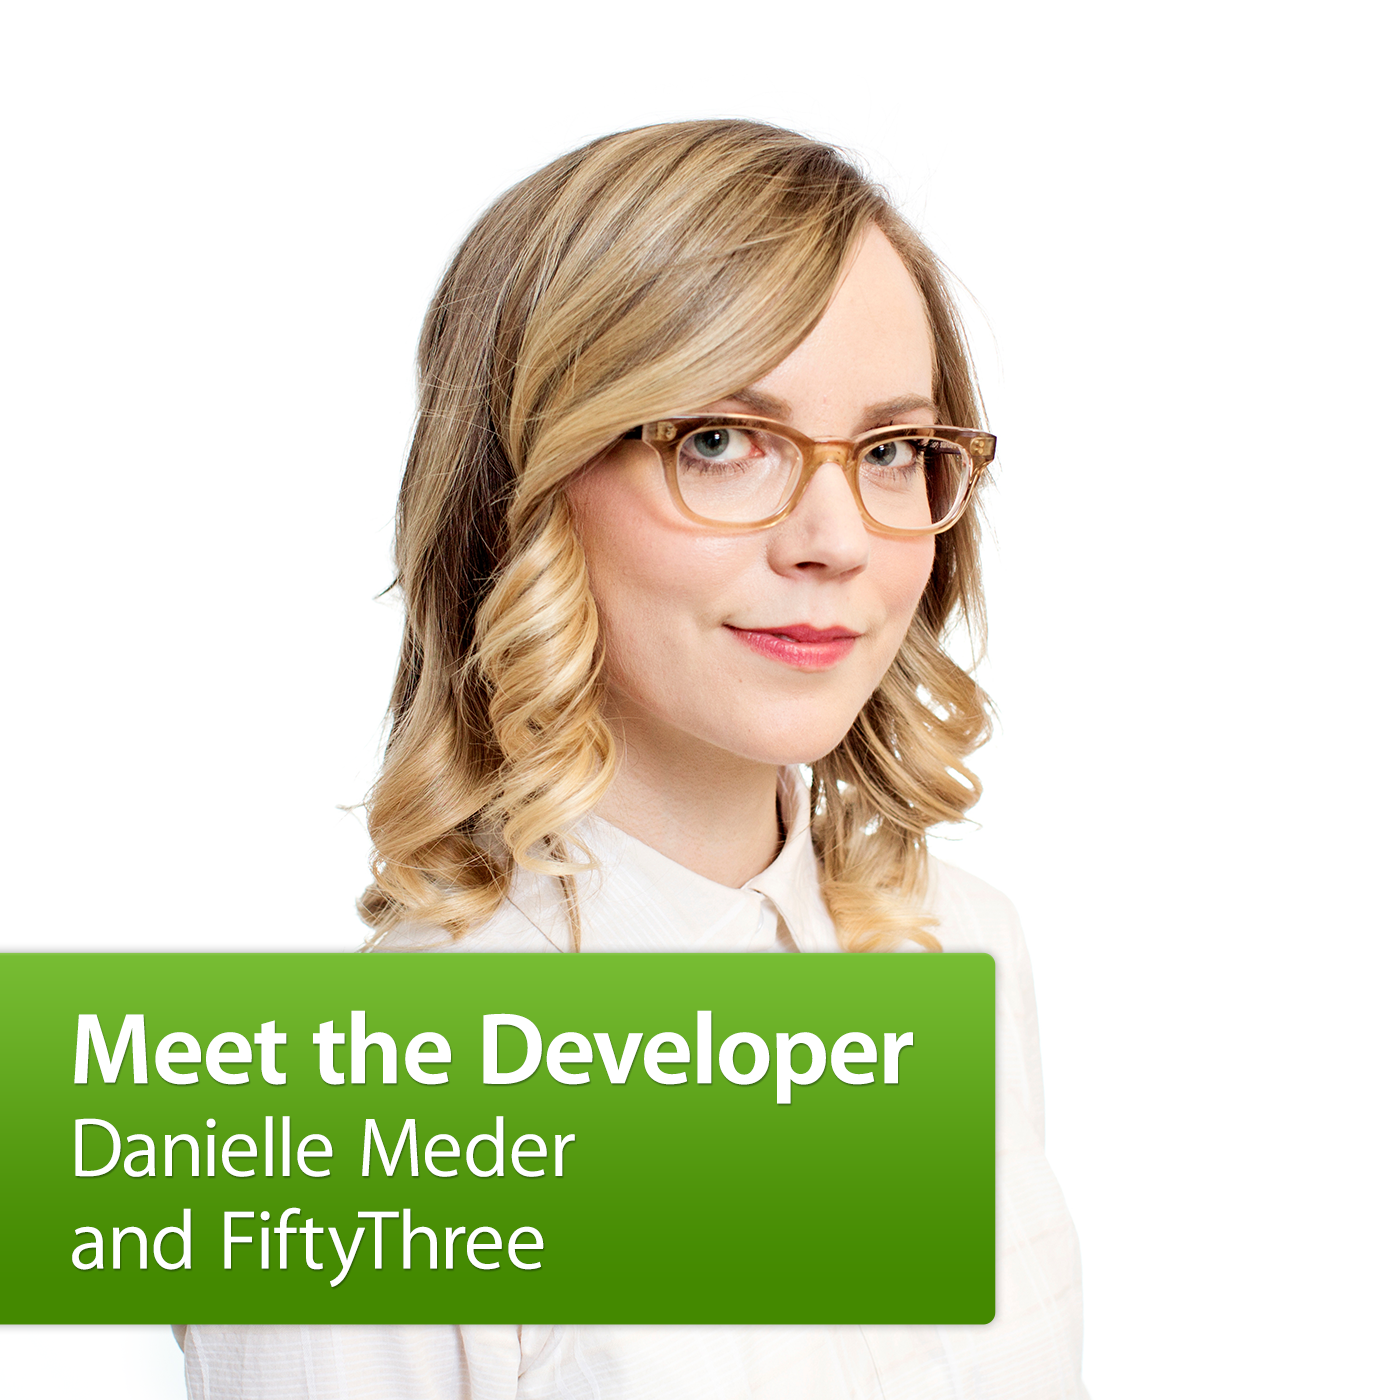 Danielle Meder and FiftyThree: Meet the Developer